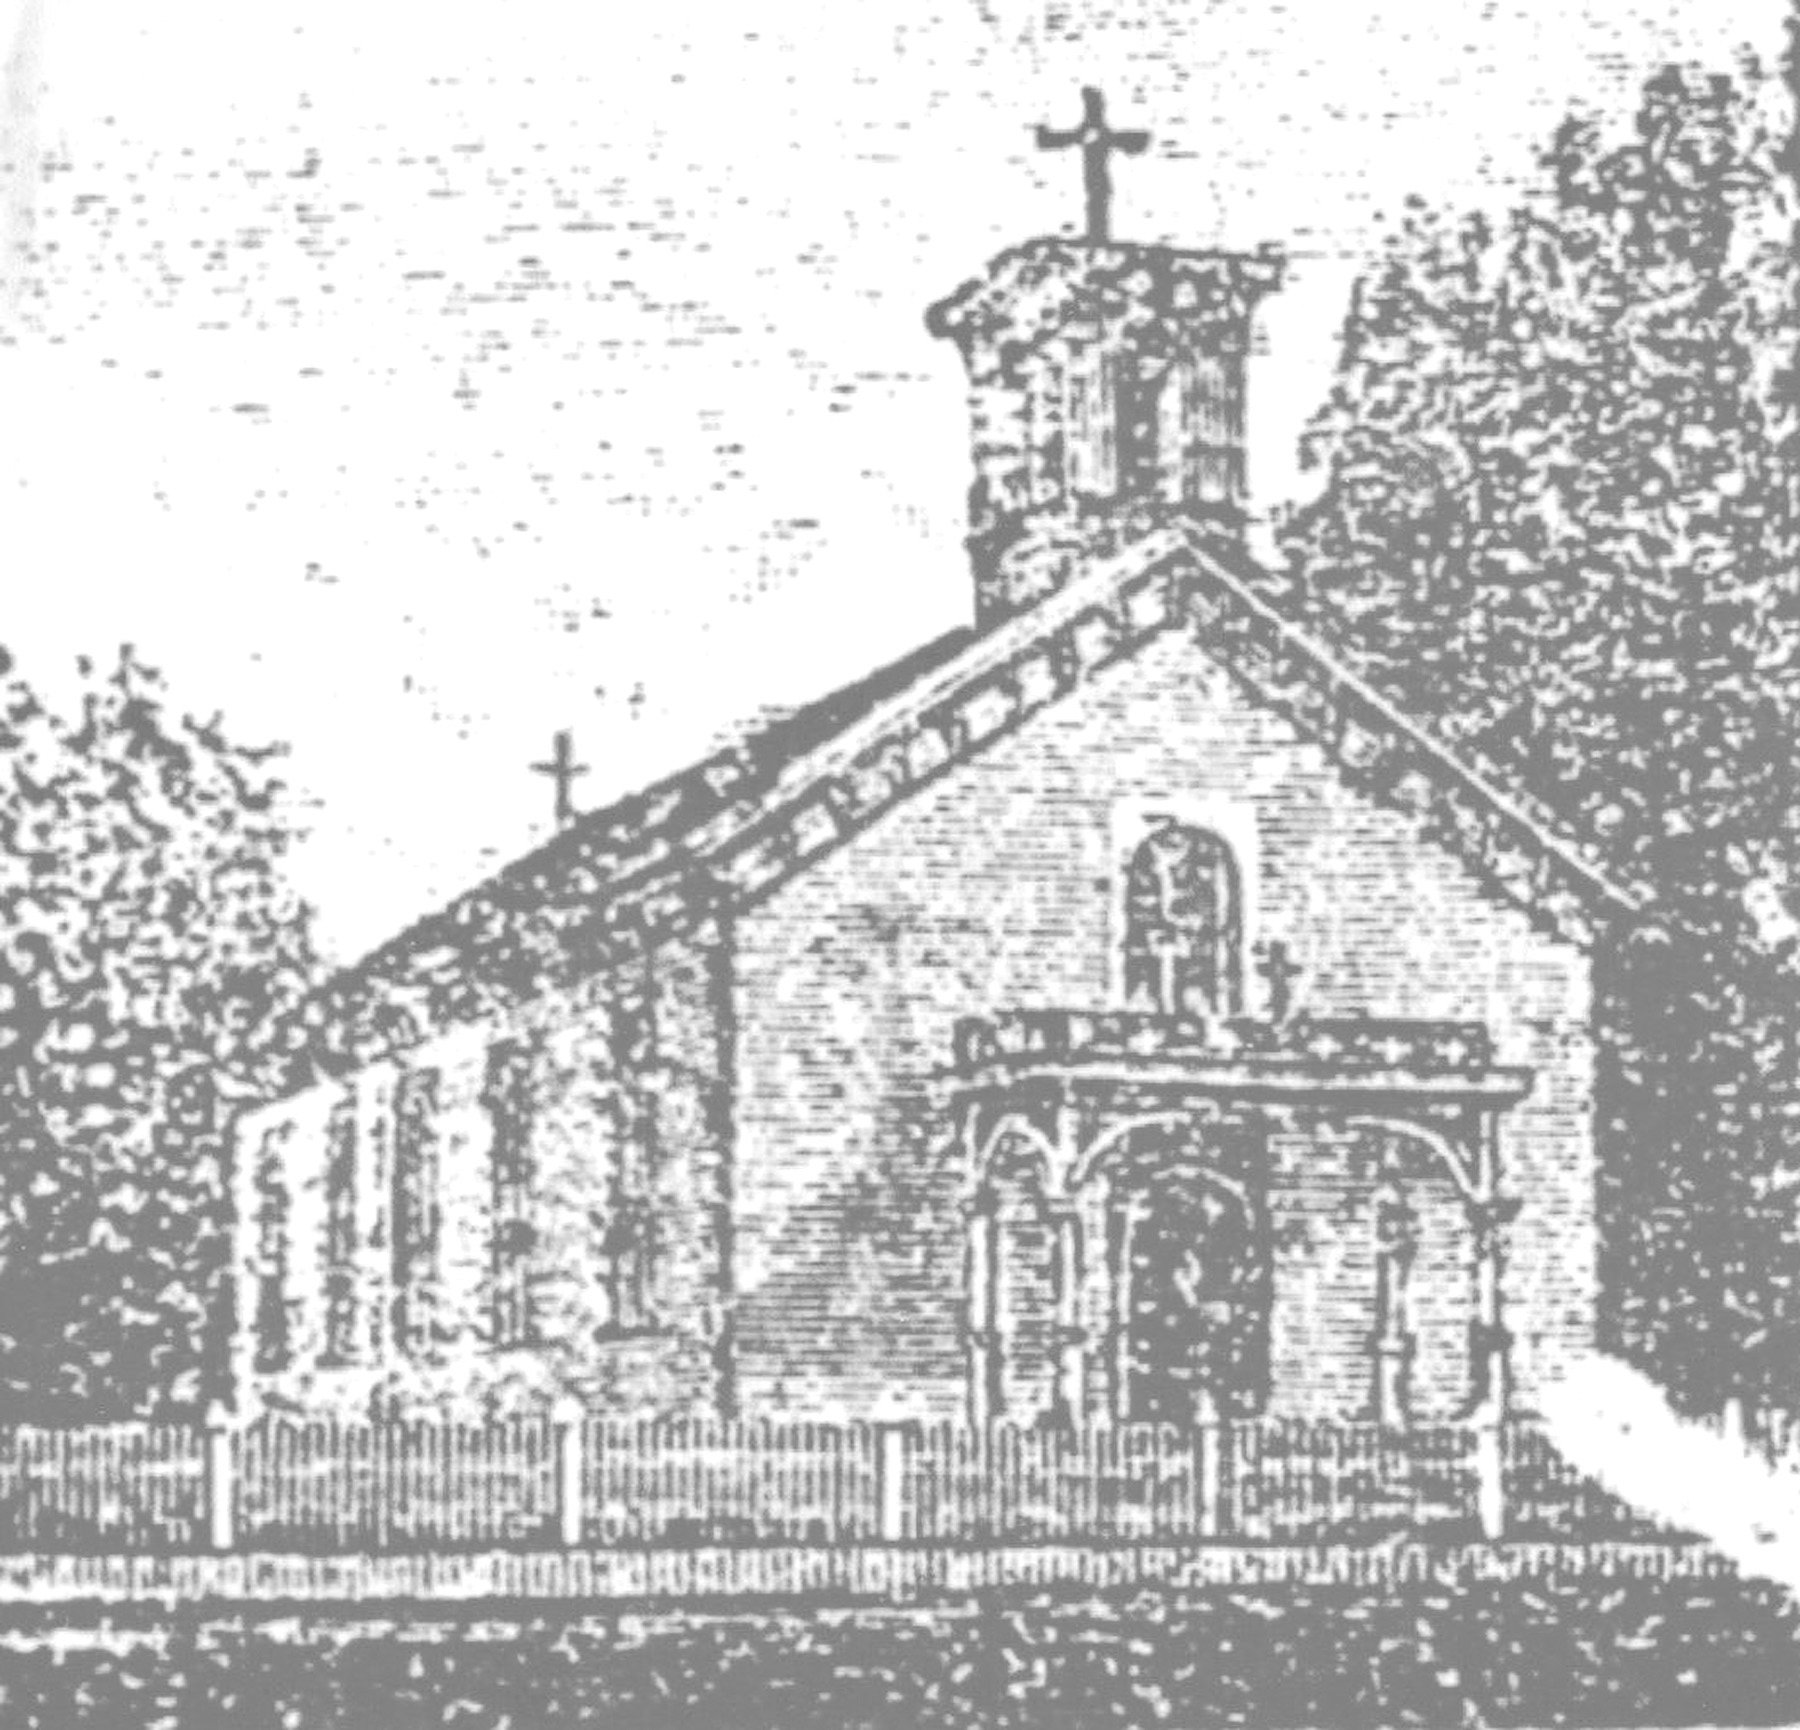 This is how St. Lawrence Catholic Church looked, from an old woodcut, about 1889. It was the second Catholic church in Sumter County. It was dedicated in 1849.